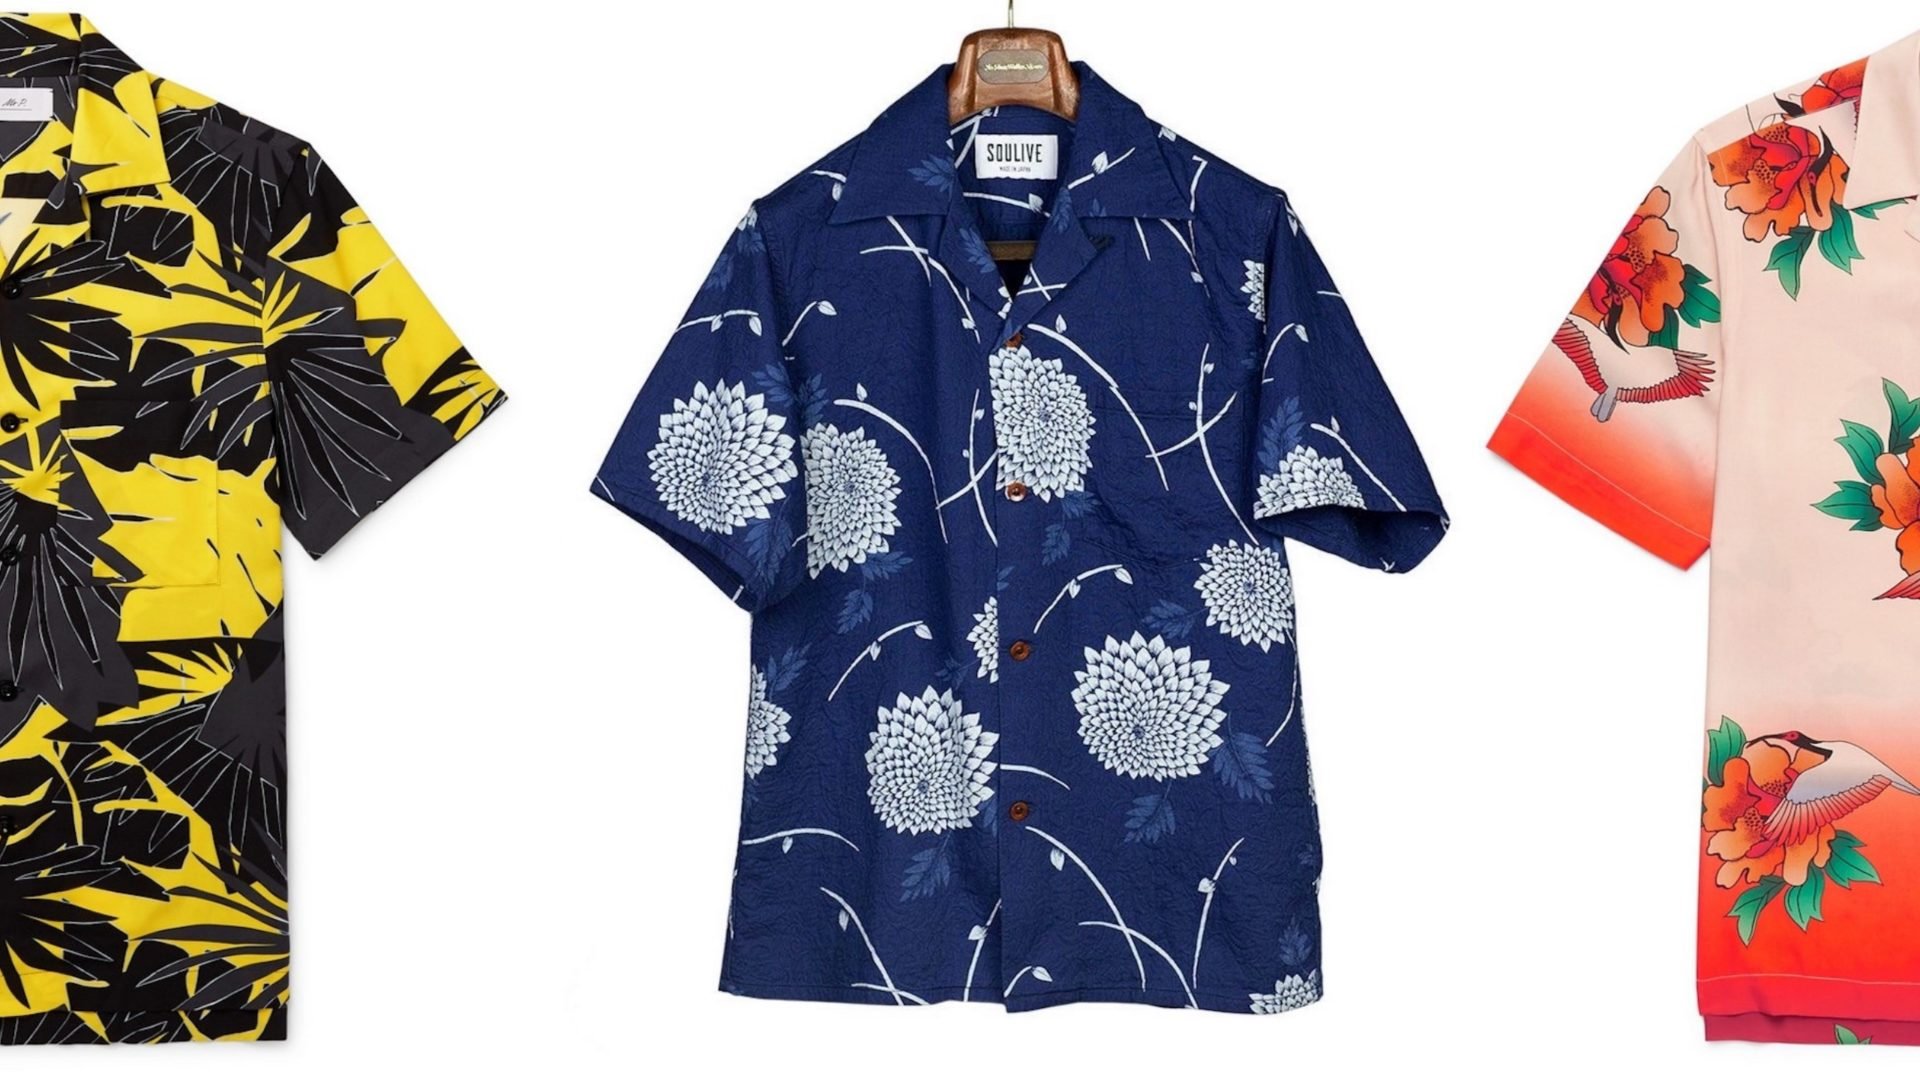 best printed shirts